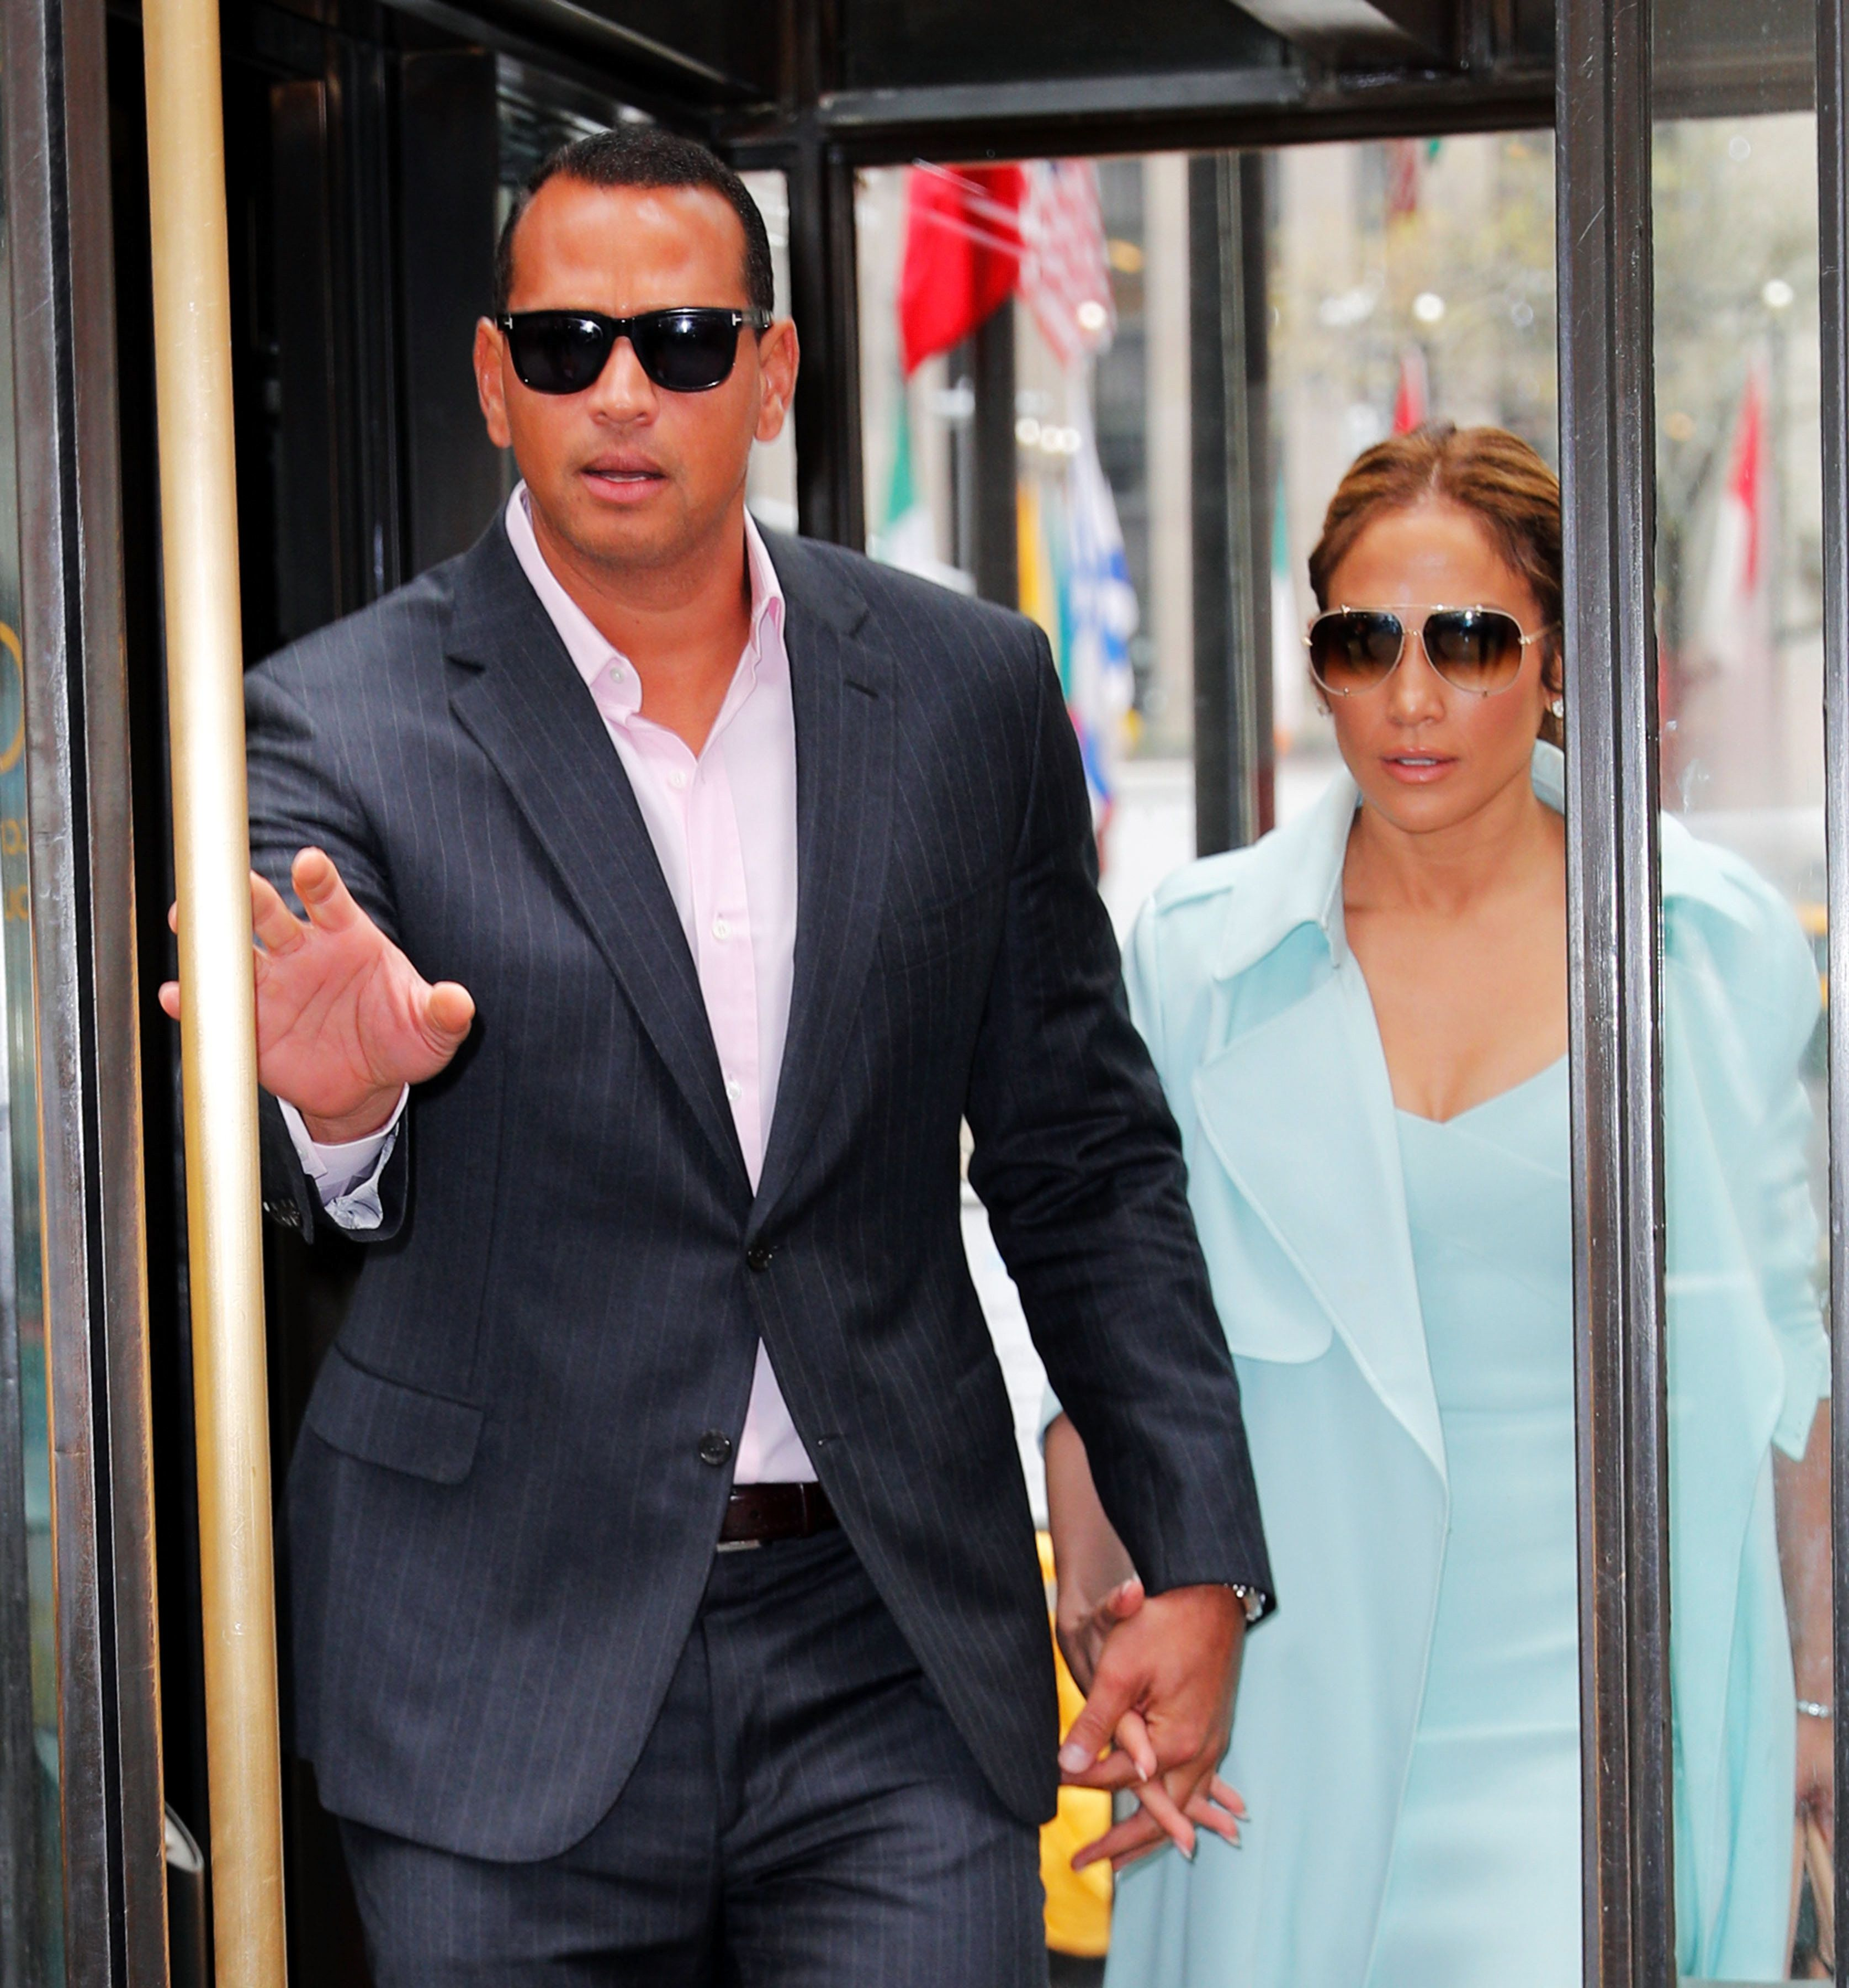 NEW YORK, NY - APRIL 24:  Alex Rodriguez and Jennifer Lopez are seen in Midtown on April 24, 2017 in New York City.  (Photo by Gotham/GC Images)